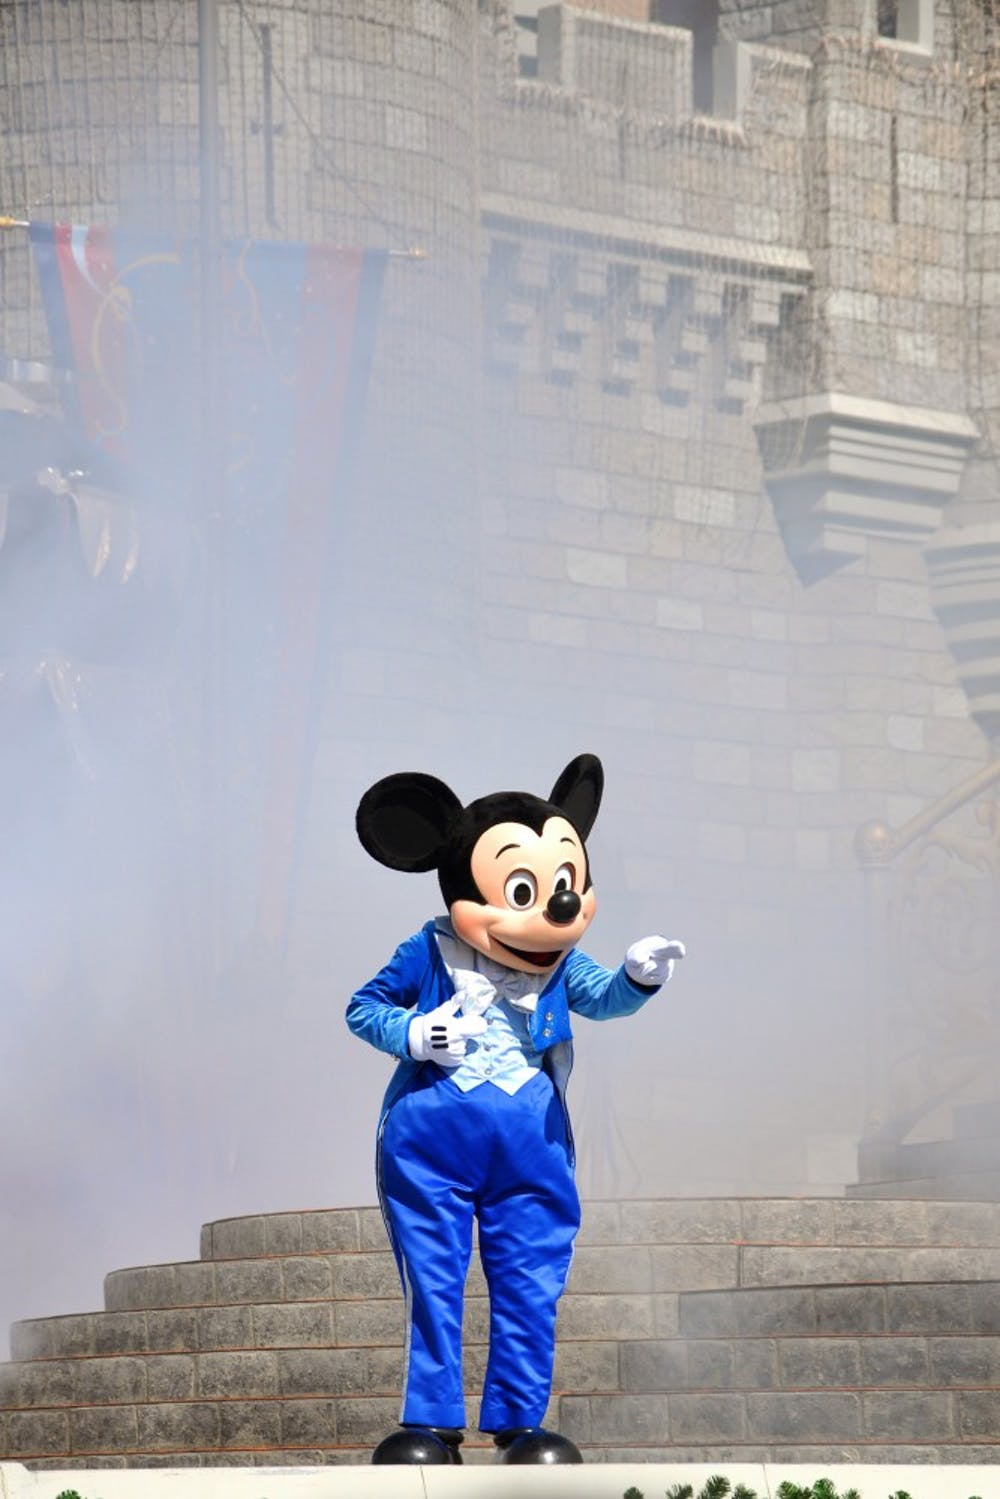 Mickey Mouse in Dream Along with Mickey show in Disney World, Orlando, Fla. (Dreamstime/TNS)